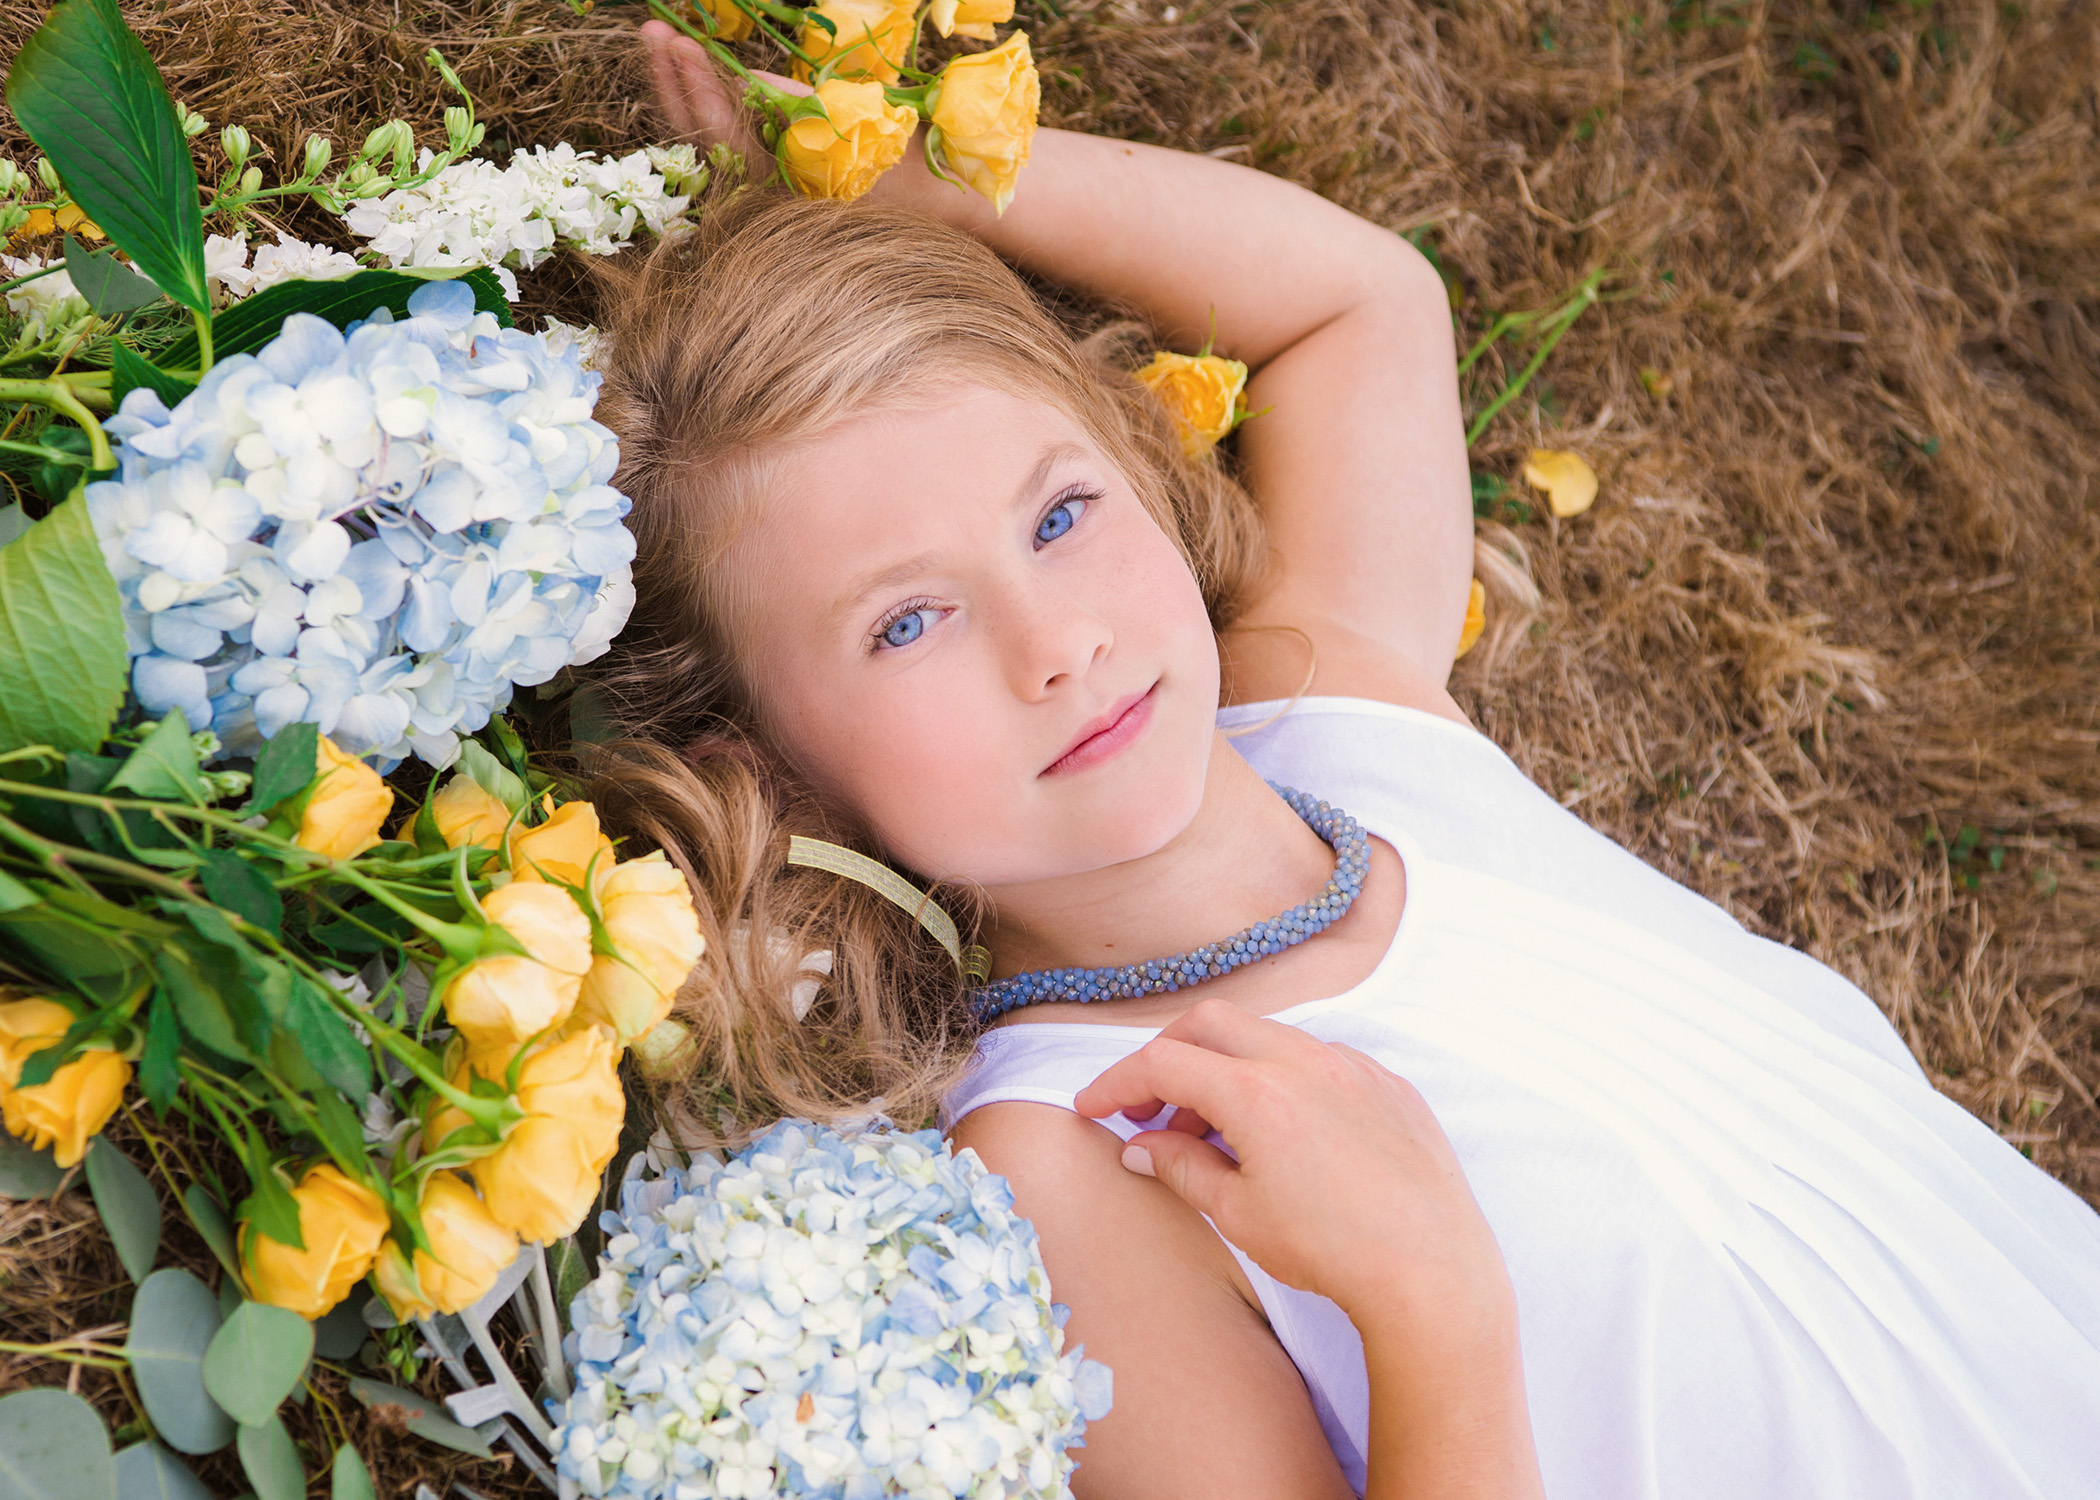 A bouquet of flowers is an easy way to add a well placed pop of color and feminity to your children's portraits